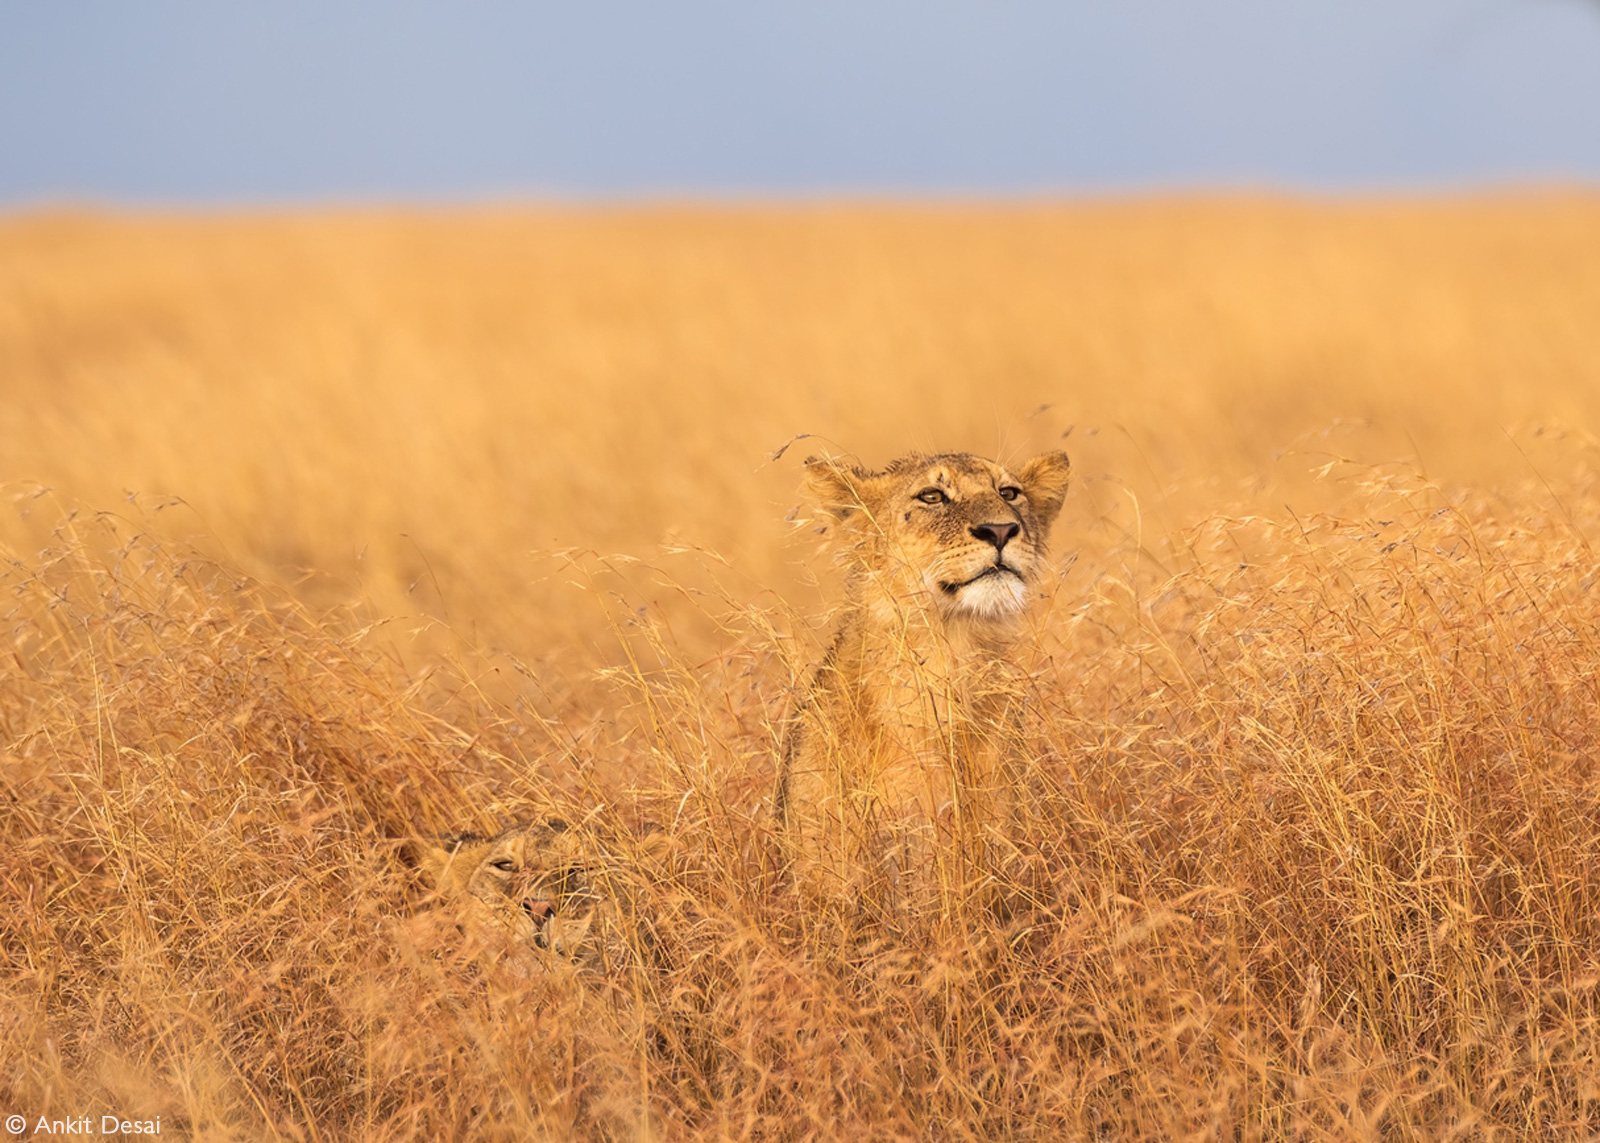 Two lion brothers blend into the dry grass. Serengeti National Park, Tanzania © Ankit Desai